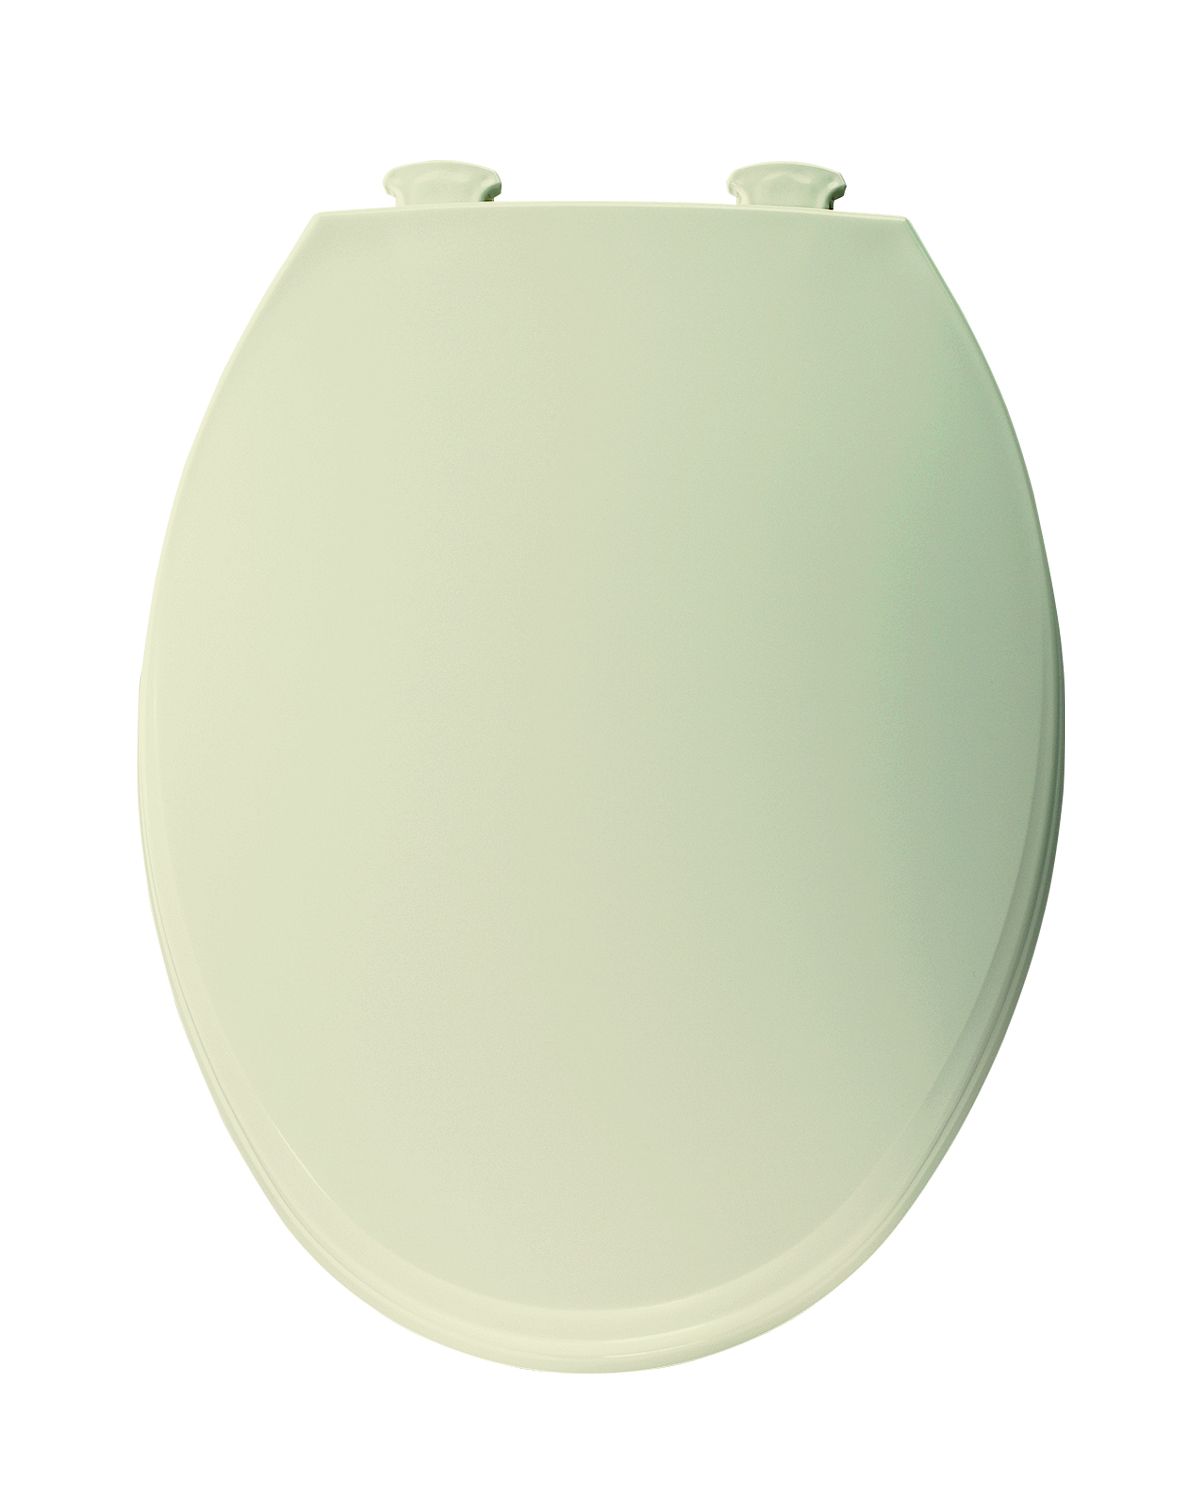 Elongated Plastic Toilet Seat with Easy Clean & Change Hinge Bone